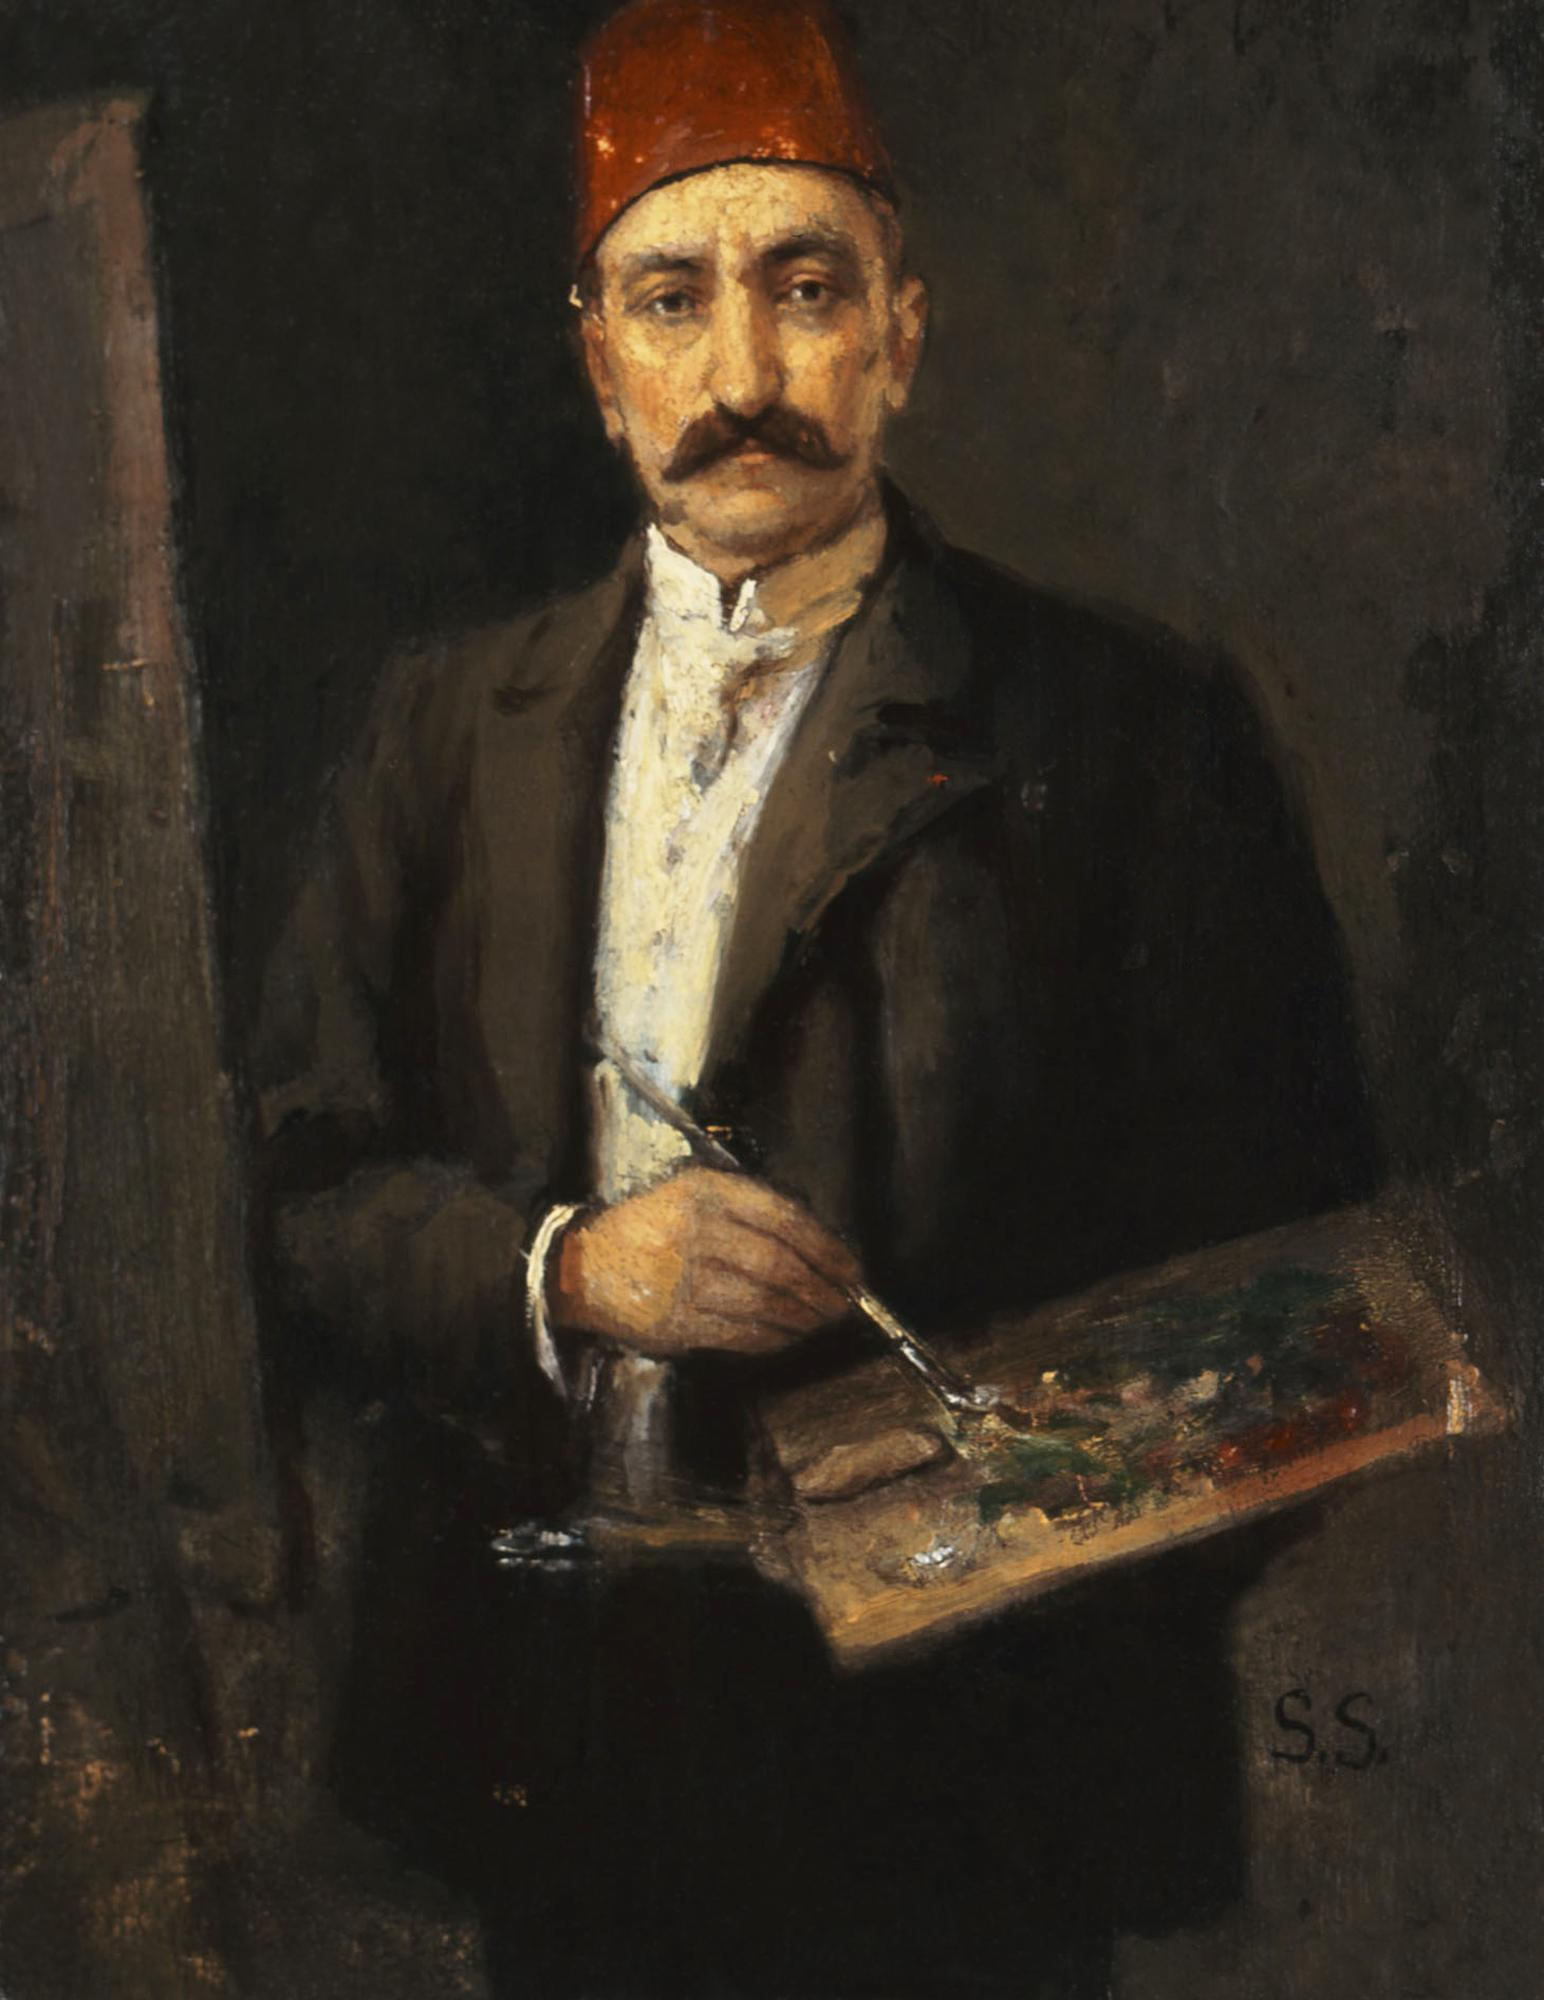 Savvidis Symeon, Portrait of the Turkish Painter Ali Ahmed,